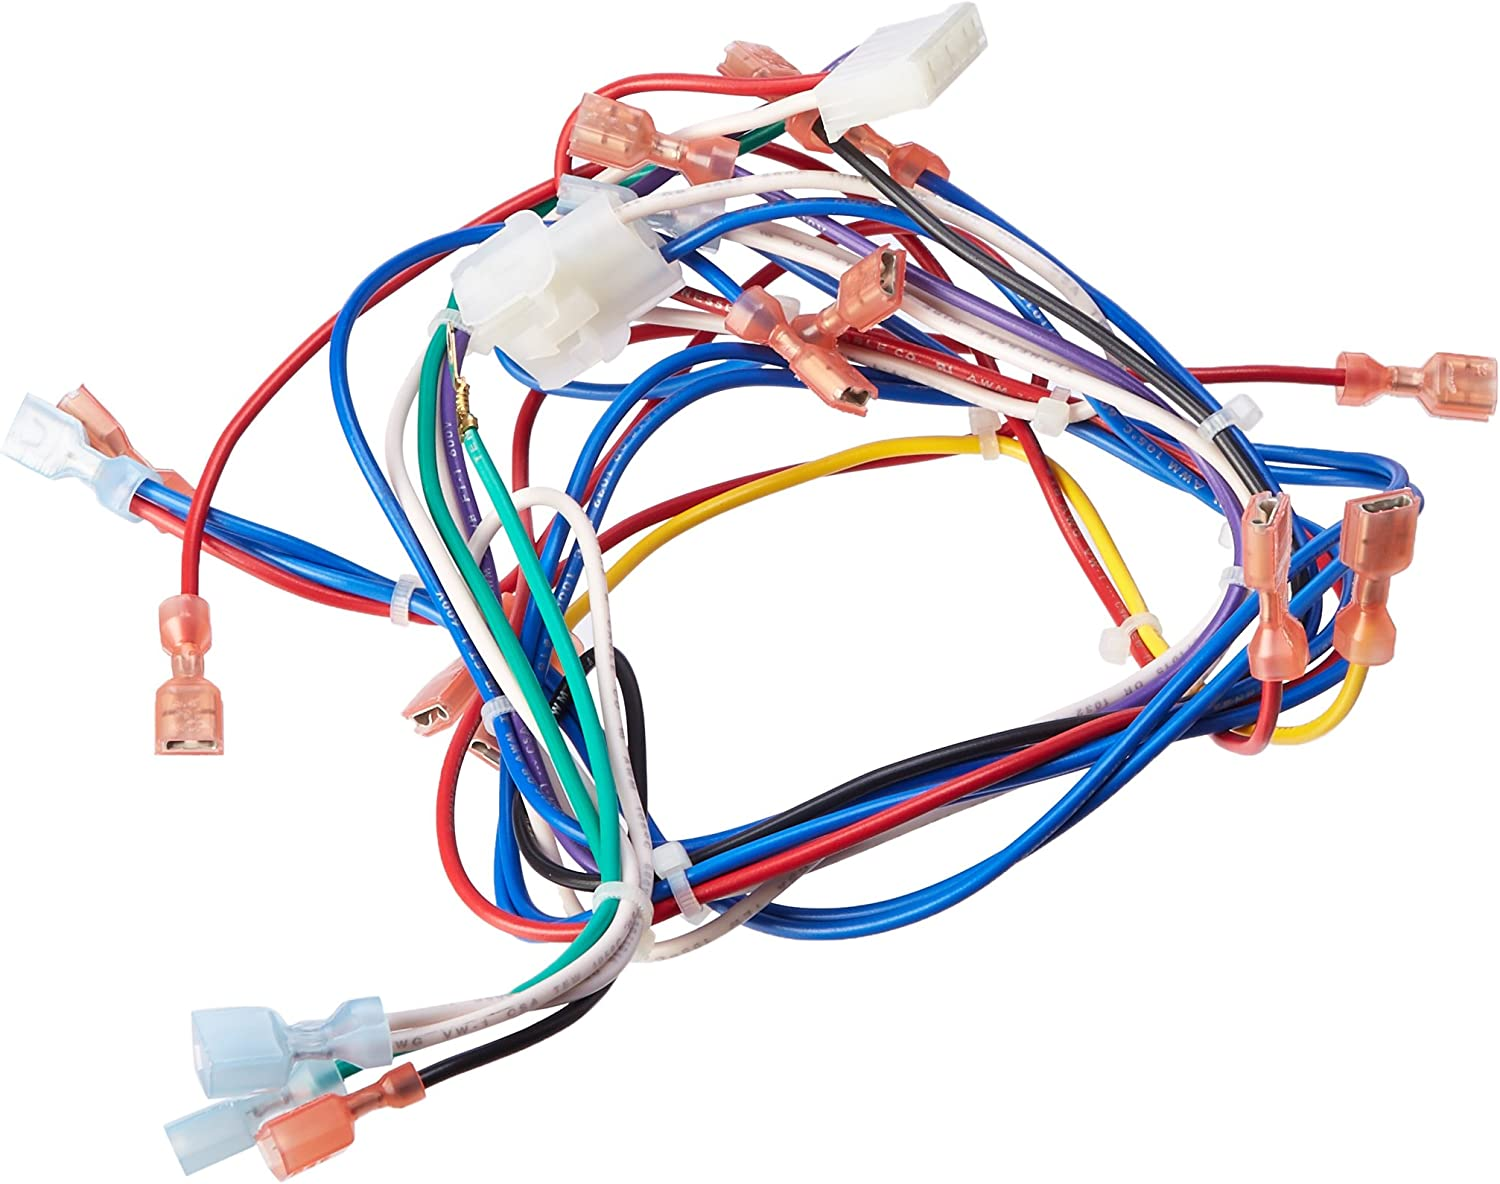 amazon.com : hayward idxwha1931 wire harness replacement for hayward  h-series induced draft and pool heater : swimming pool and spa supplies :  garden & outdoor  amazon.com